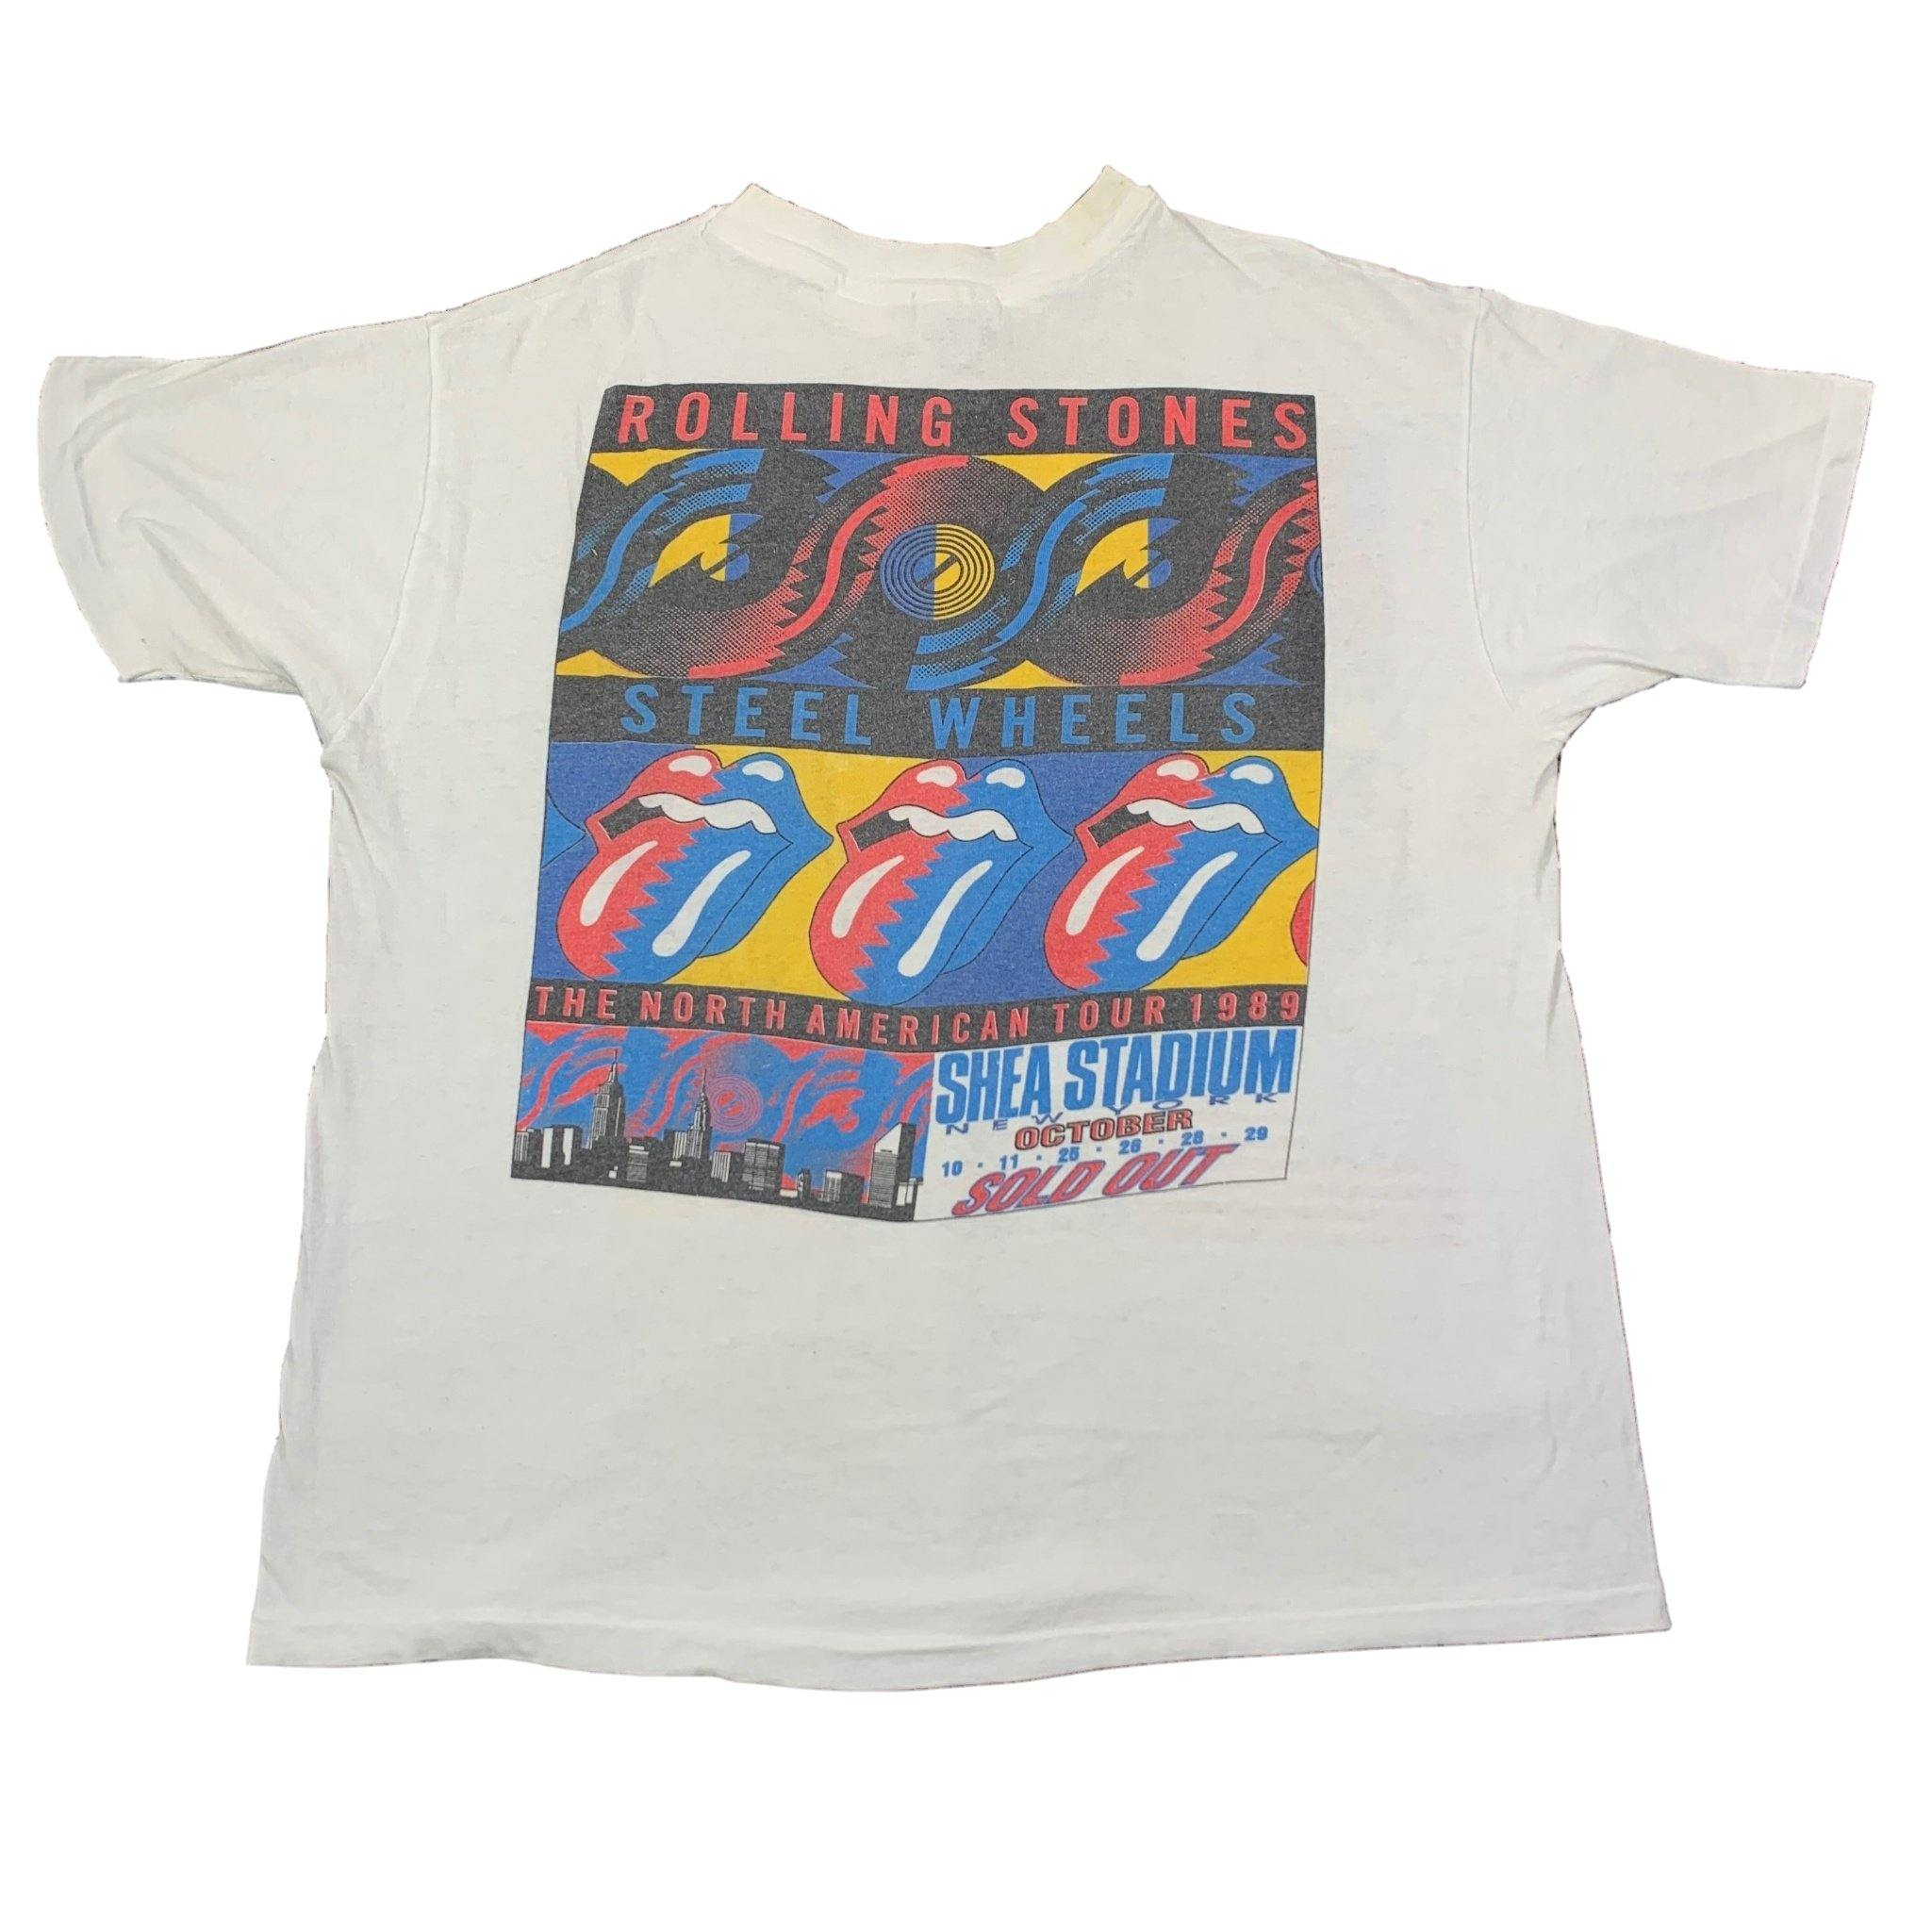 "Vintage Rolling Stones ""Steel Wheels"" Tour T-Shirt"